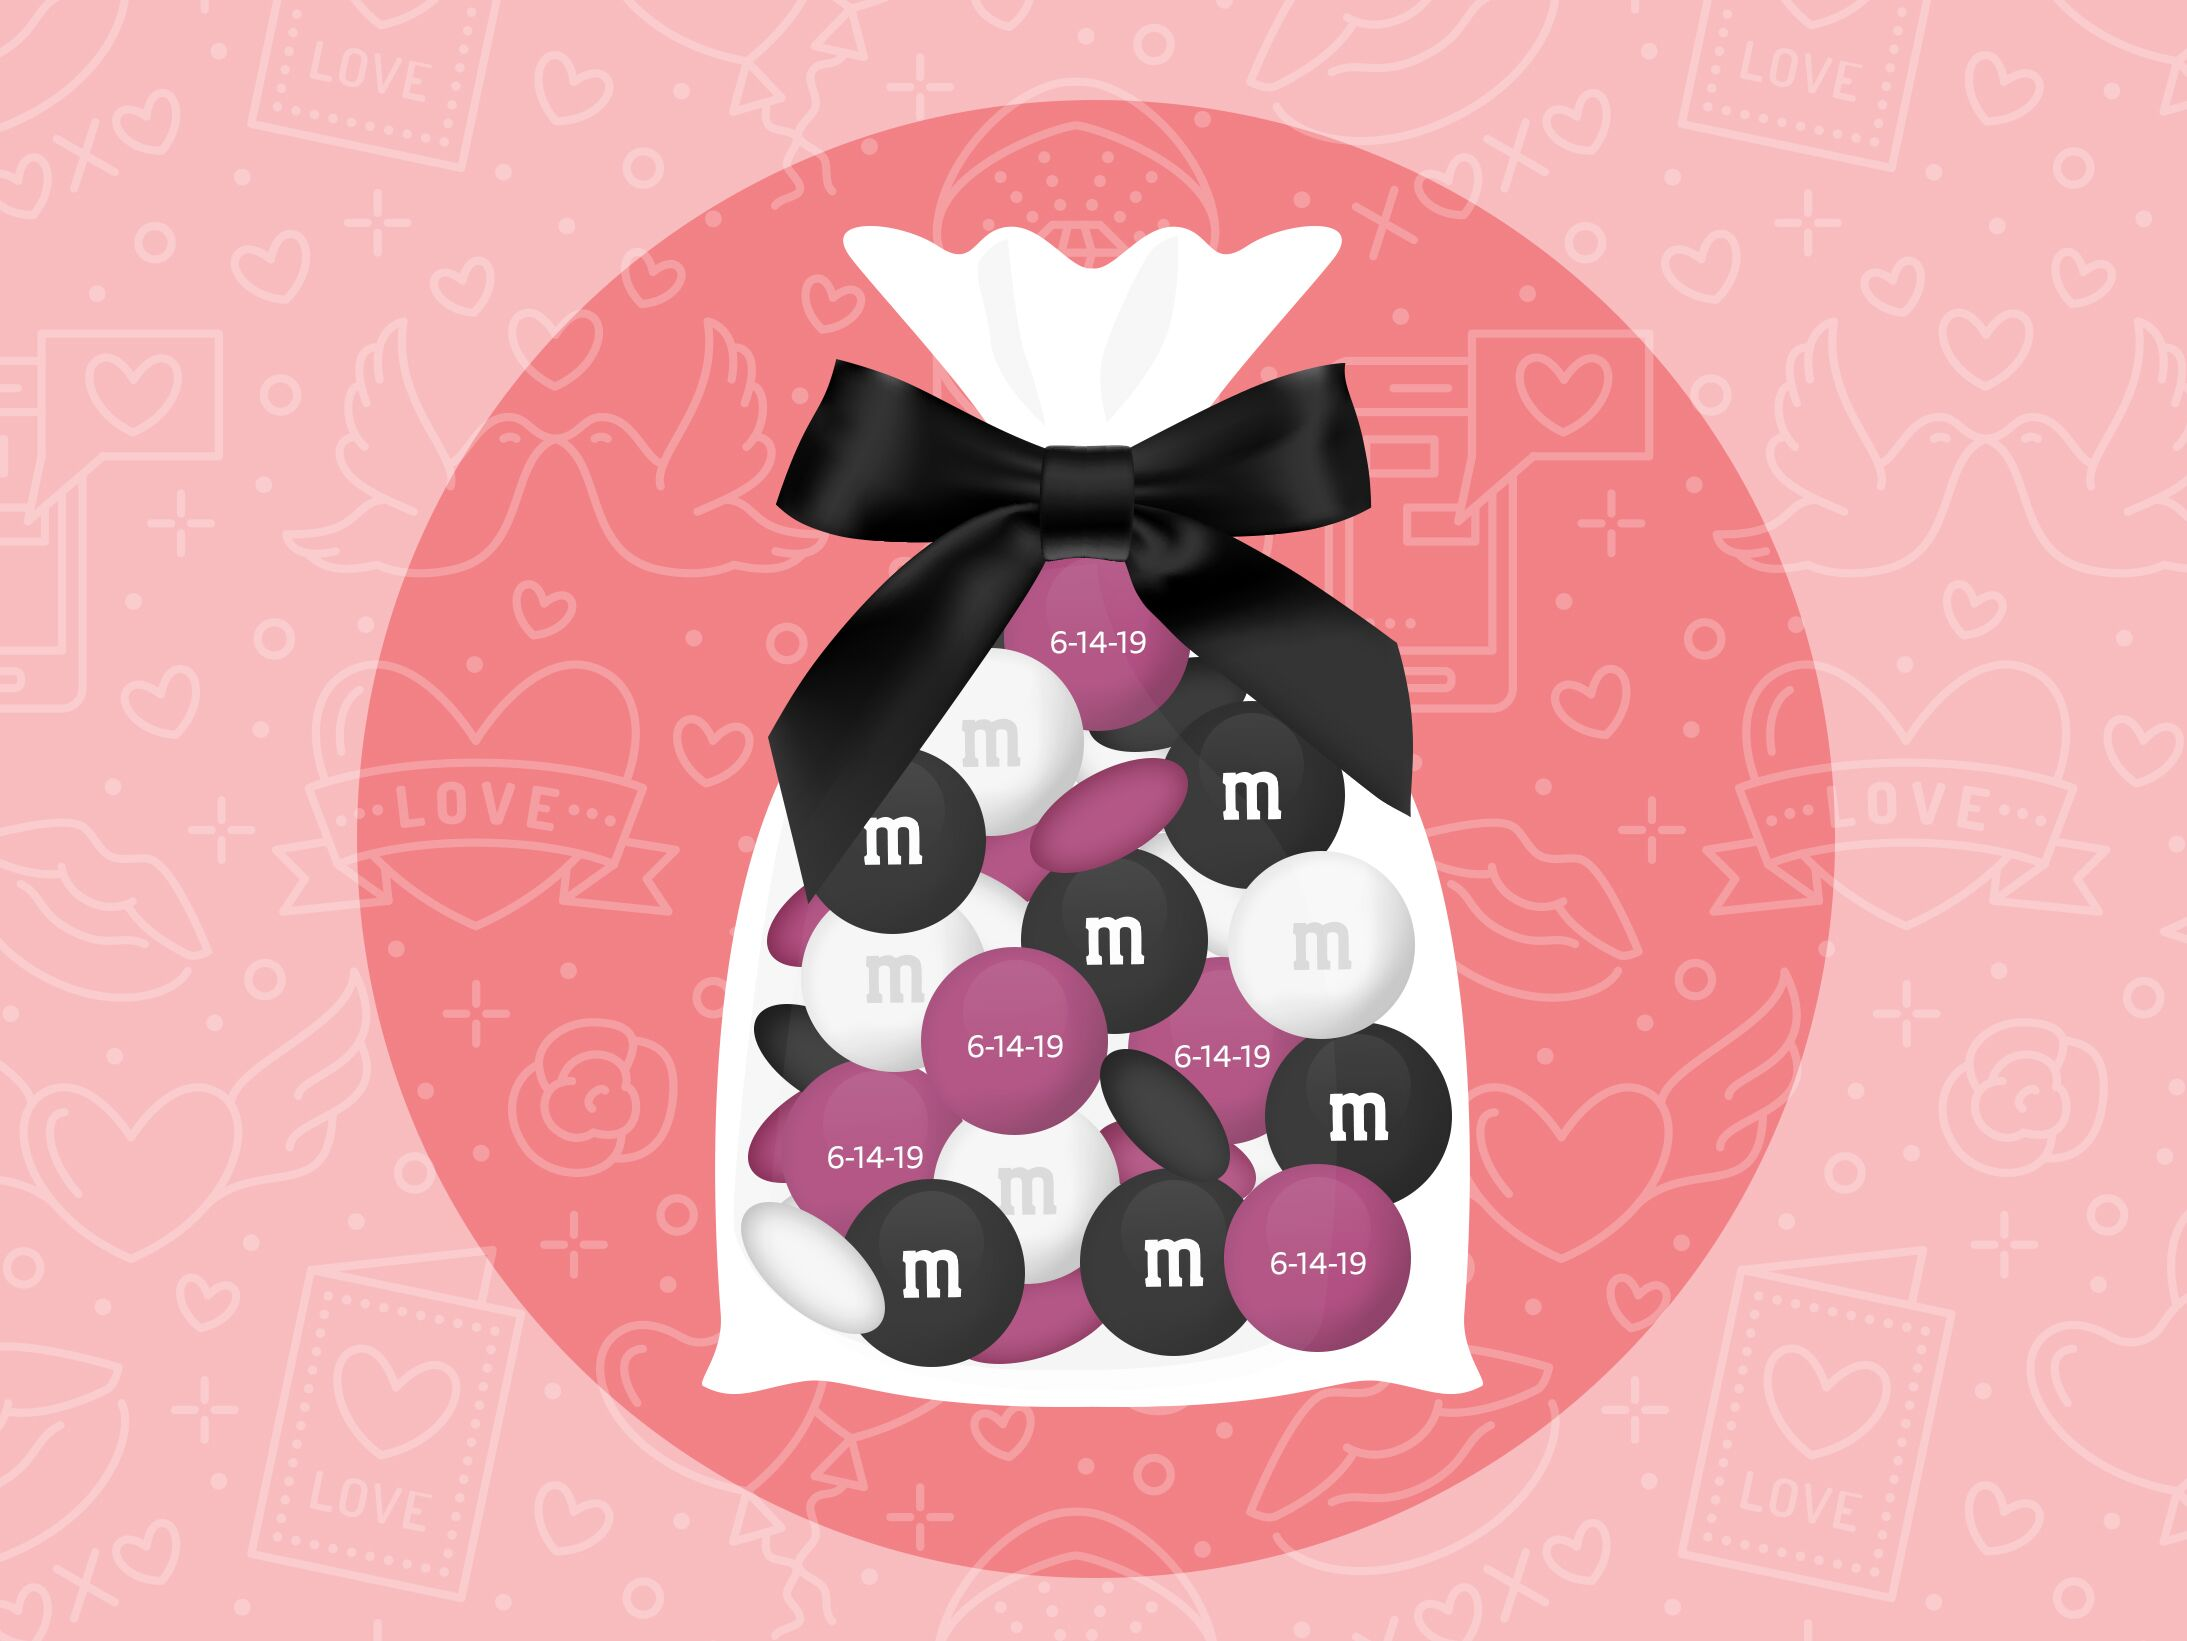 Personalized Candy Favors for Your Wedding